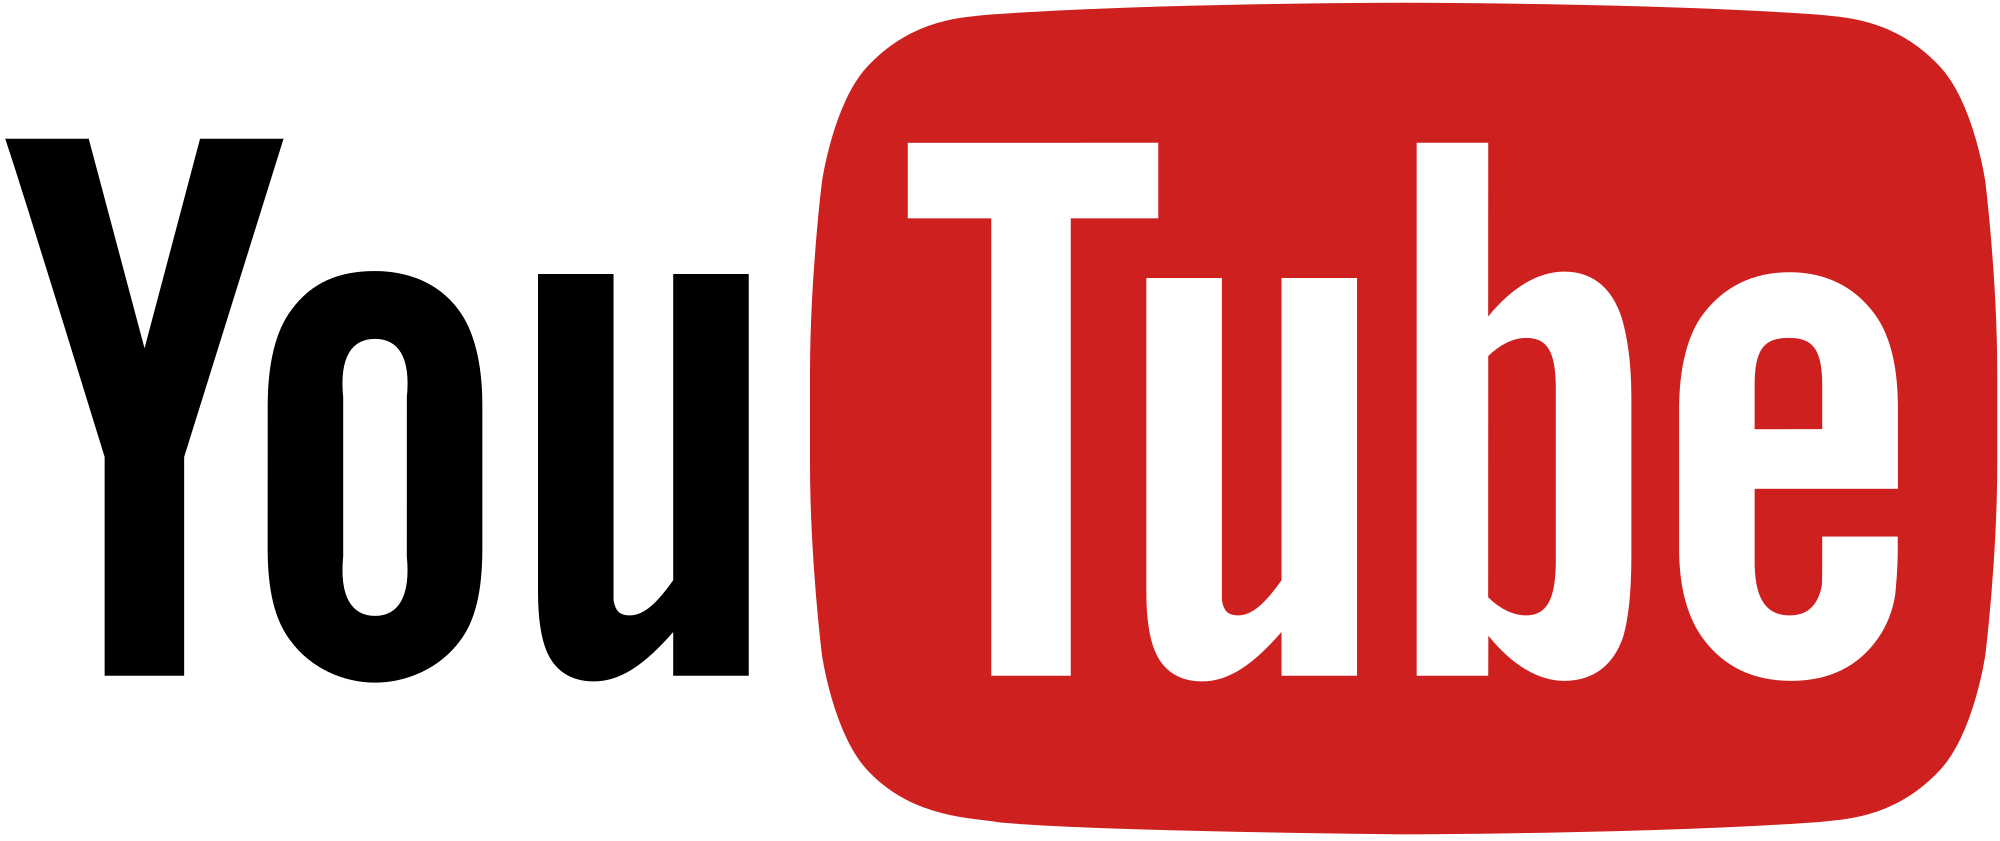 Youtube comment png. File logo of svg